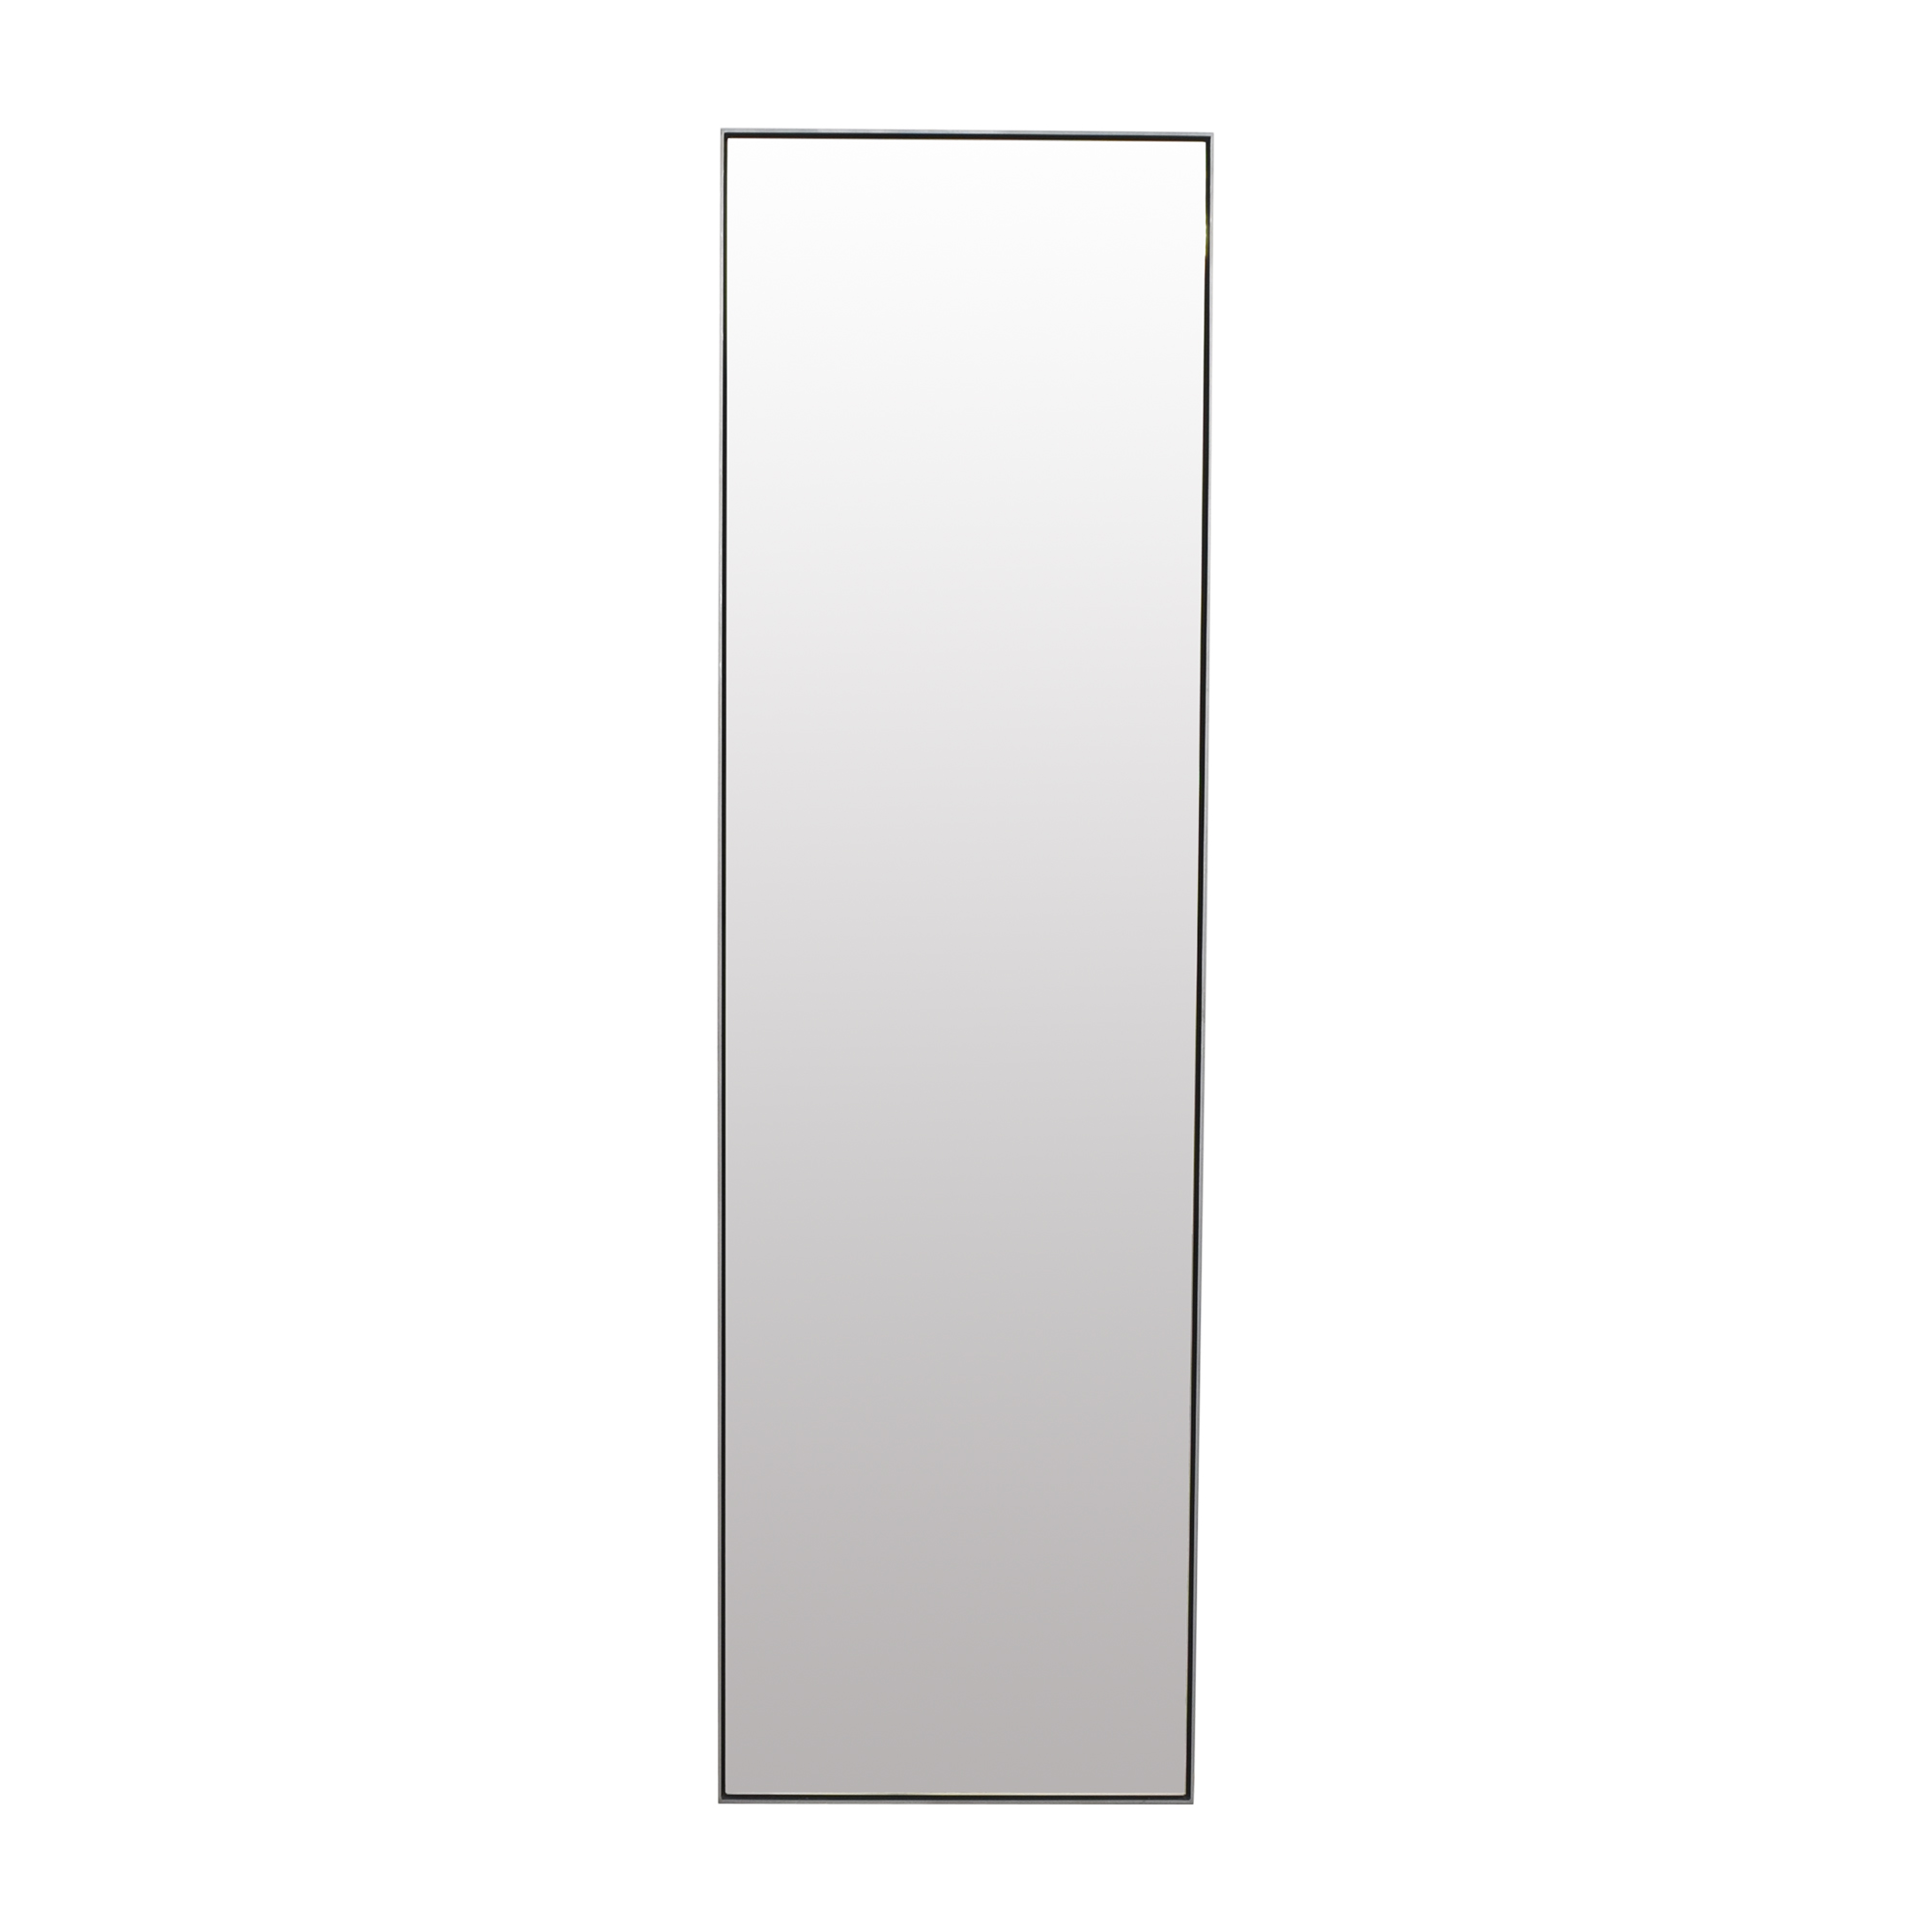 Restoration Hardware Restoration Hardware Floating Floor Mirror